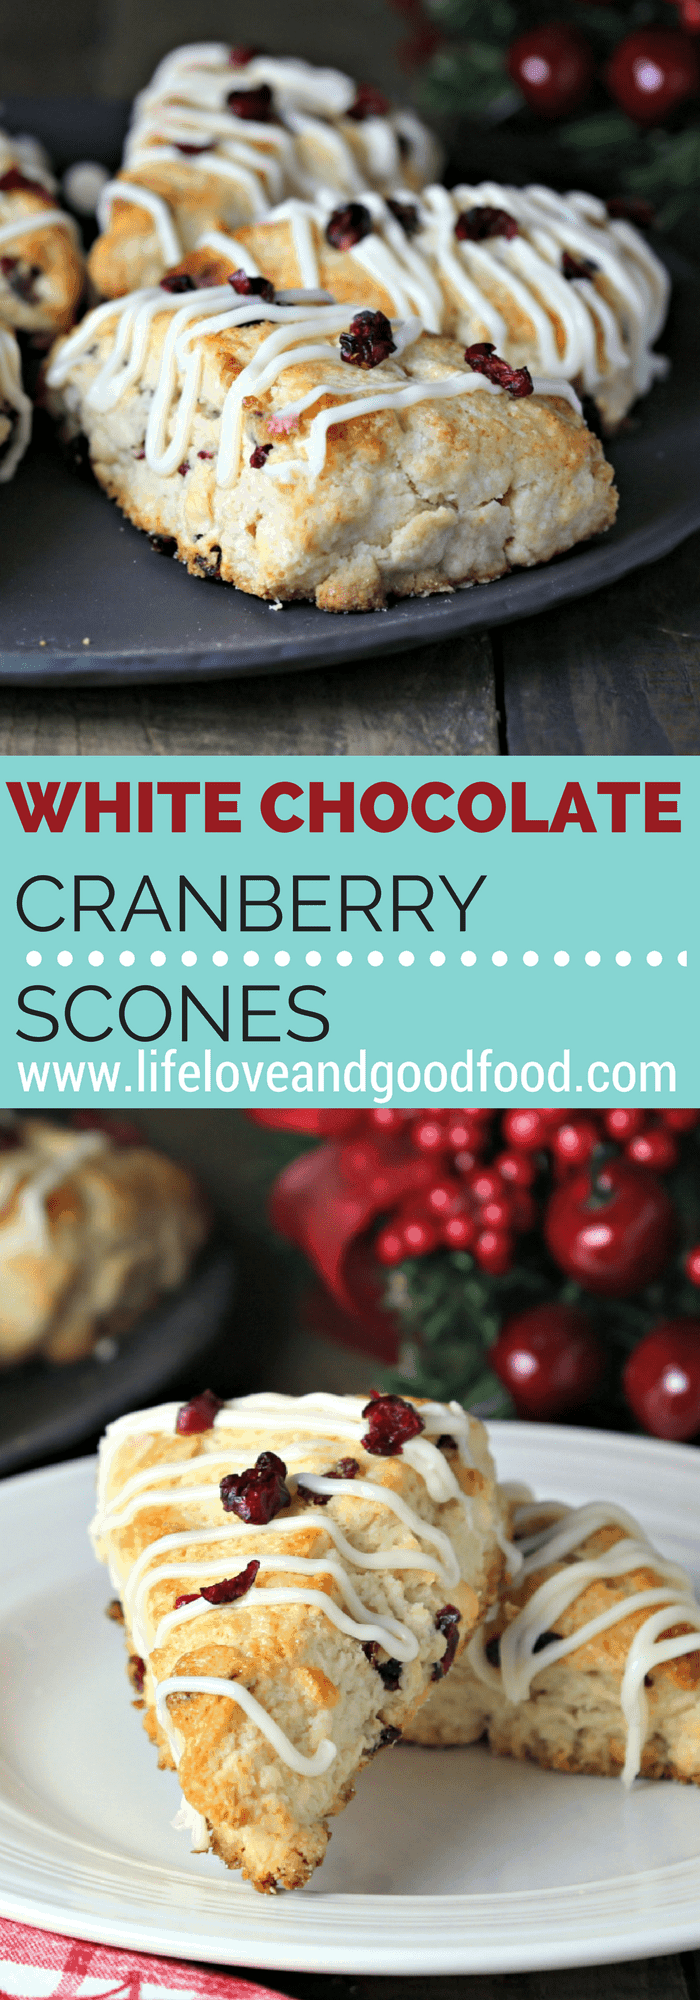 White Chocolate Cranberry Scones | Life, Love, and Good Food #ad @ImmaculateBakes